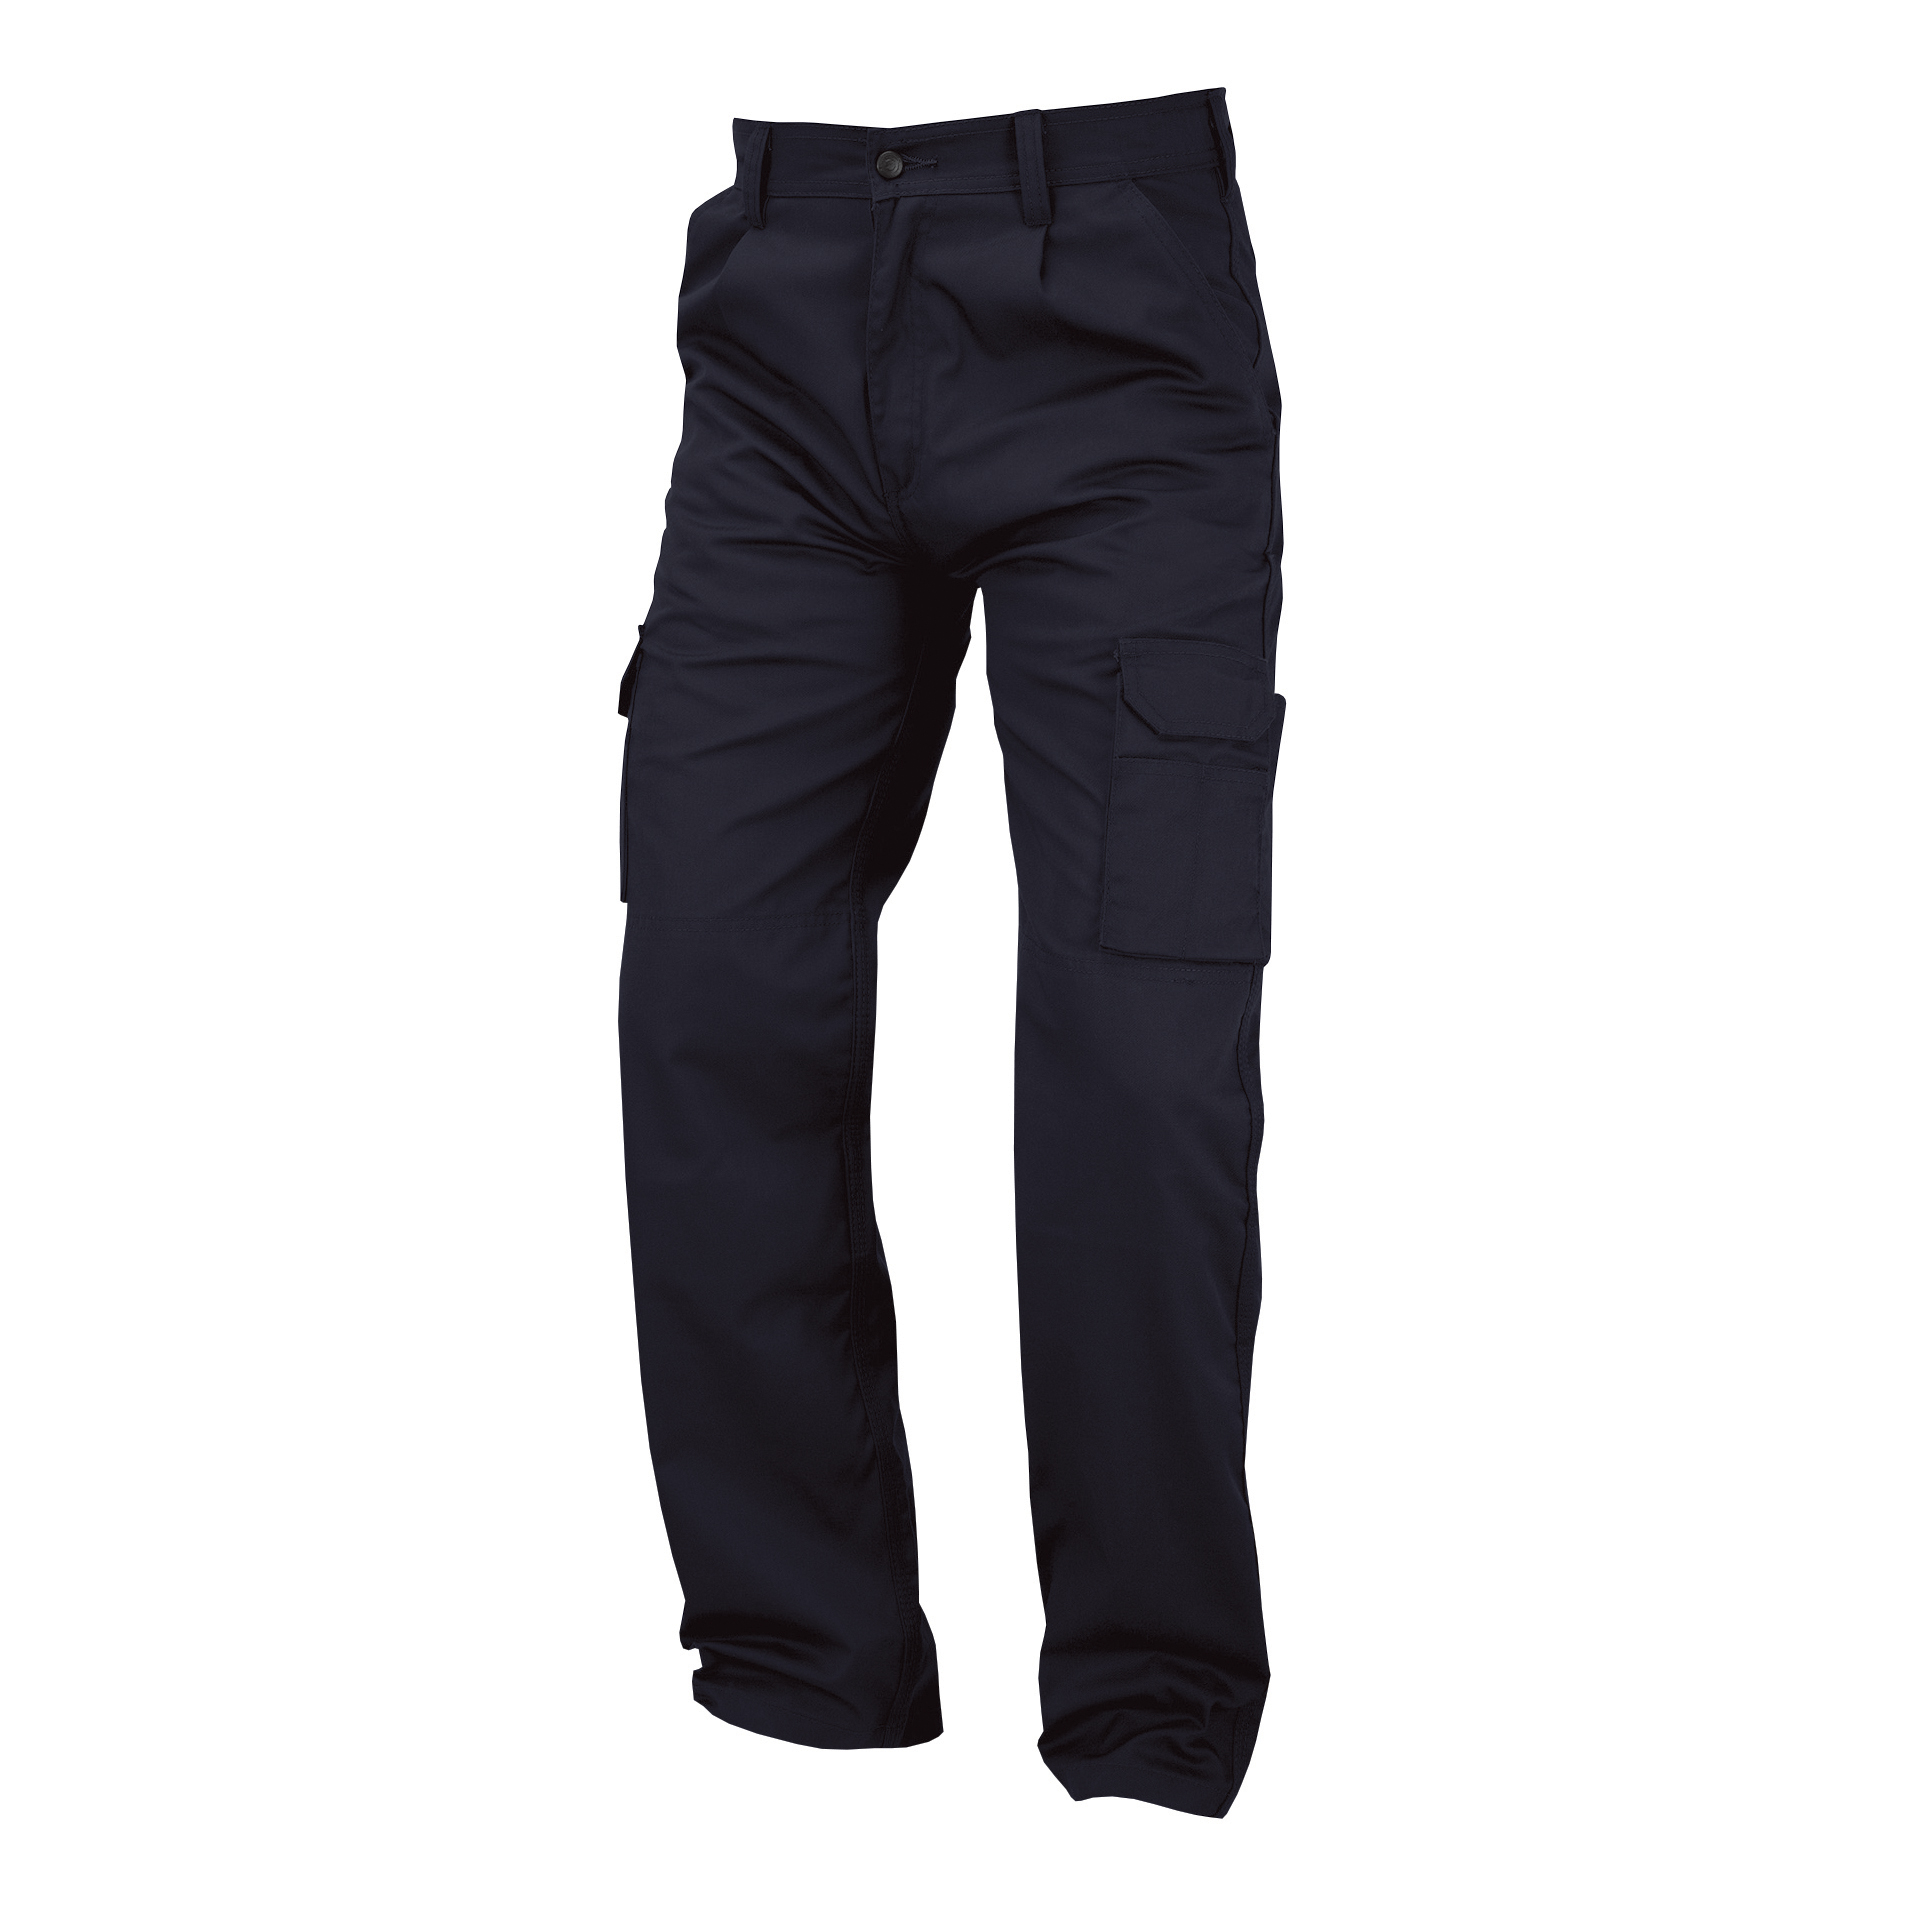 Combat Trousers Polycotton with Pockets 32in Long Navy Blue Ref PCTHWN32T 1-3 Days Lead Time